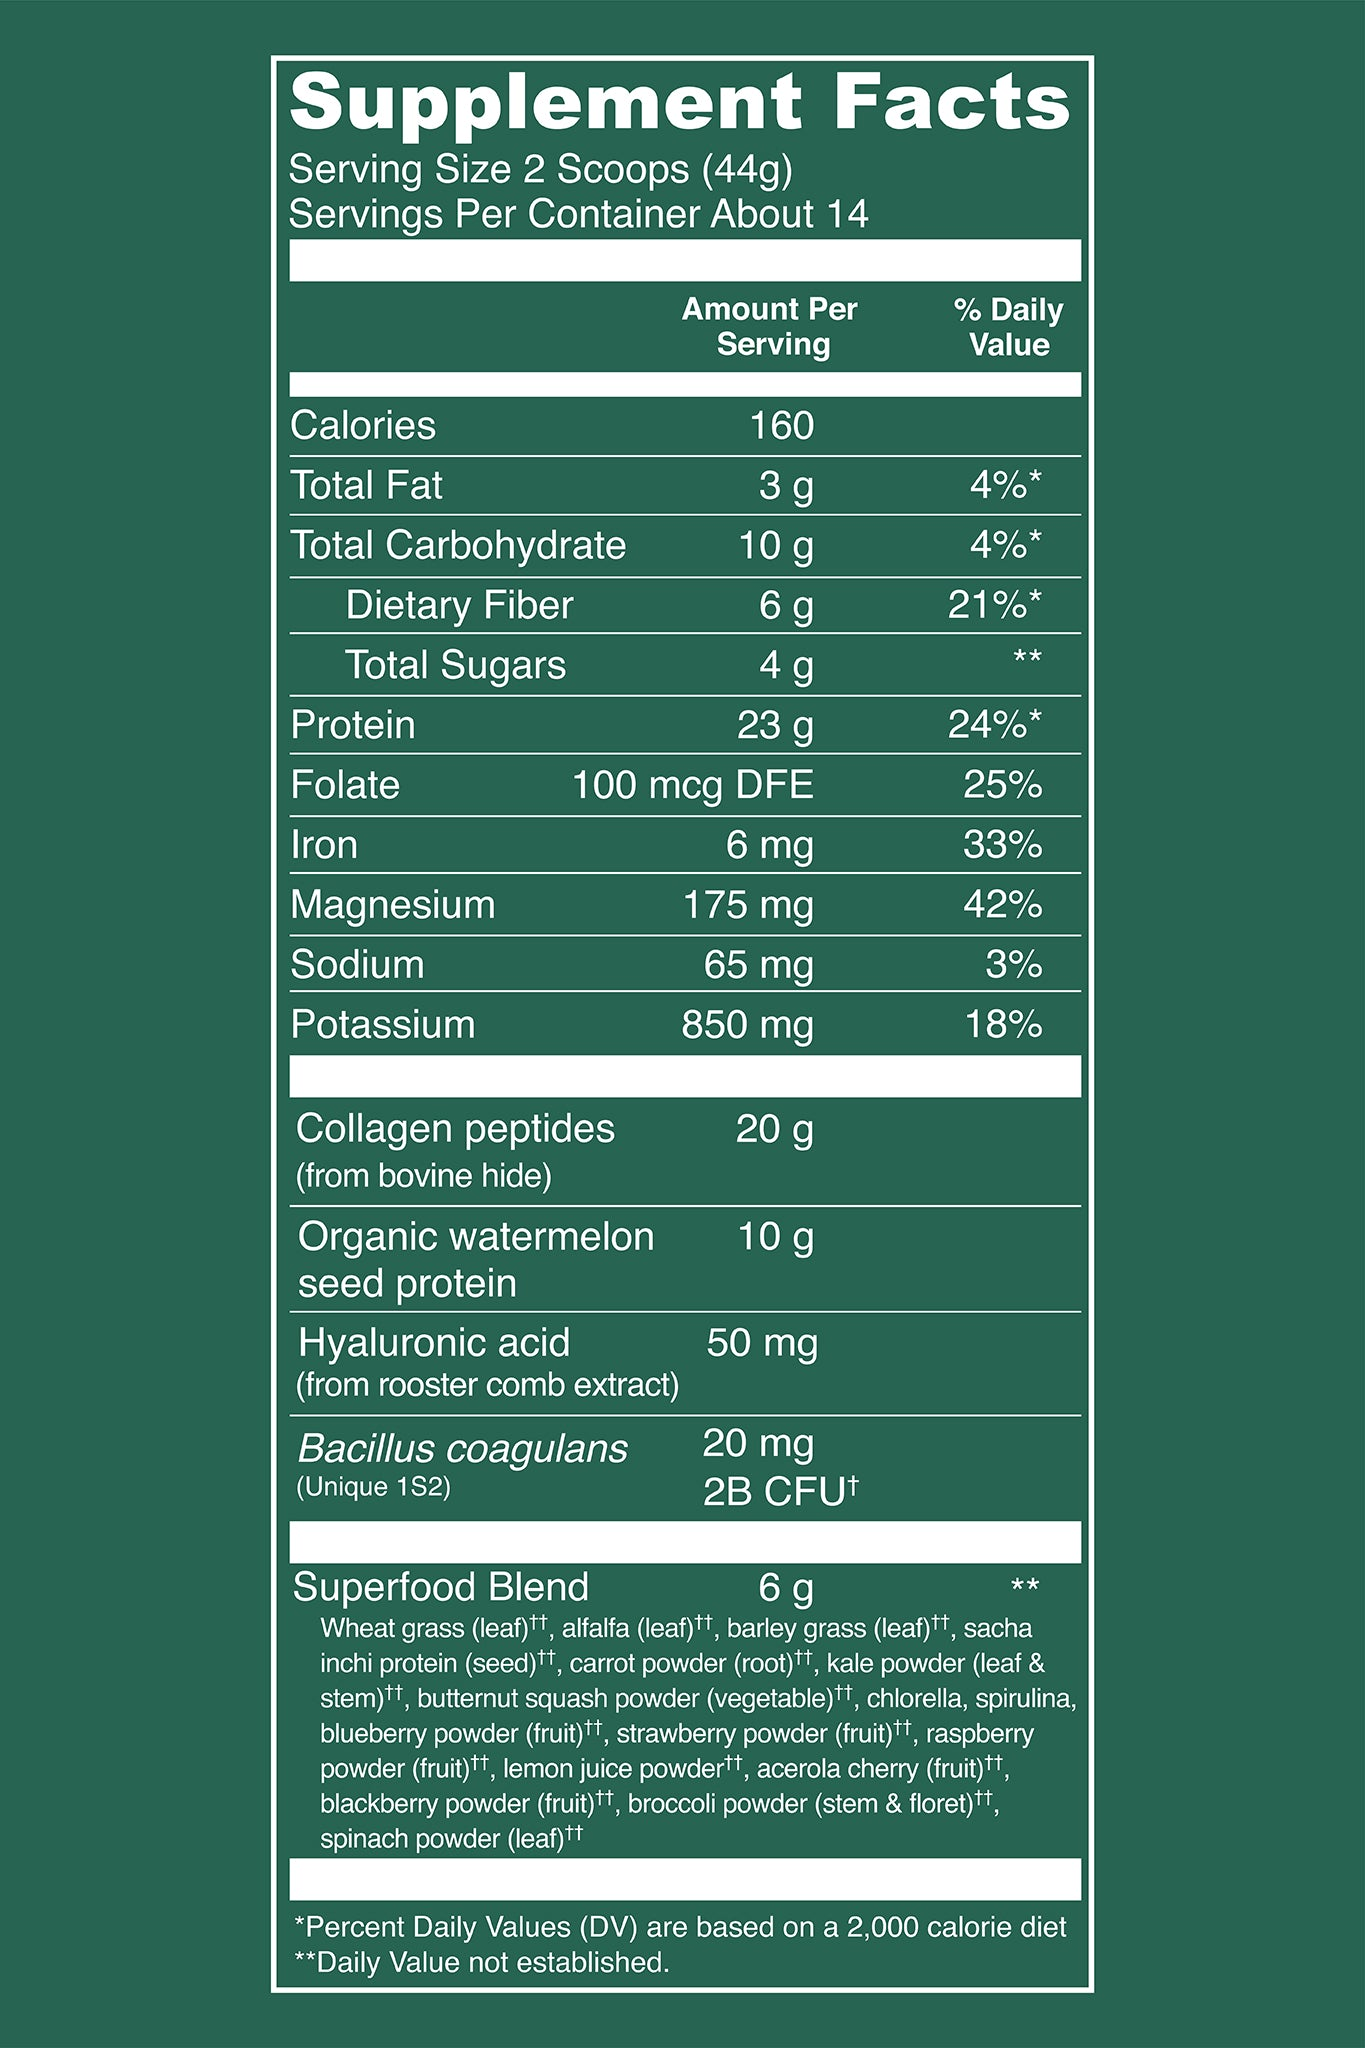 Serving Size: 2 Scoops (44g). Servings per container: about 14. Per serving values - Calories 160. Total Fat: 3g (4% DV). Total Carbohydrate: 10g (4% DV). Dietary Fiber: 6g (21% DV). Total Sugars: 4g. Protein: 23g (24% DV). Folate: 100 mcg DFE (25% DV). Iron: 6 mg (33% DV). Magnesium: 175mg (42% DV). Sodium: 65 mg (3% DV). Potassium: 850 mg (18% DV). Collagen Peptides (bovine): 20g. Organic Watermelon seed protein: 10g. Hyaluronic acid: 50 mg. Bacillus coagulans: 20mg 2B CFU. Superfood Blend: 6g.